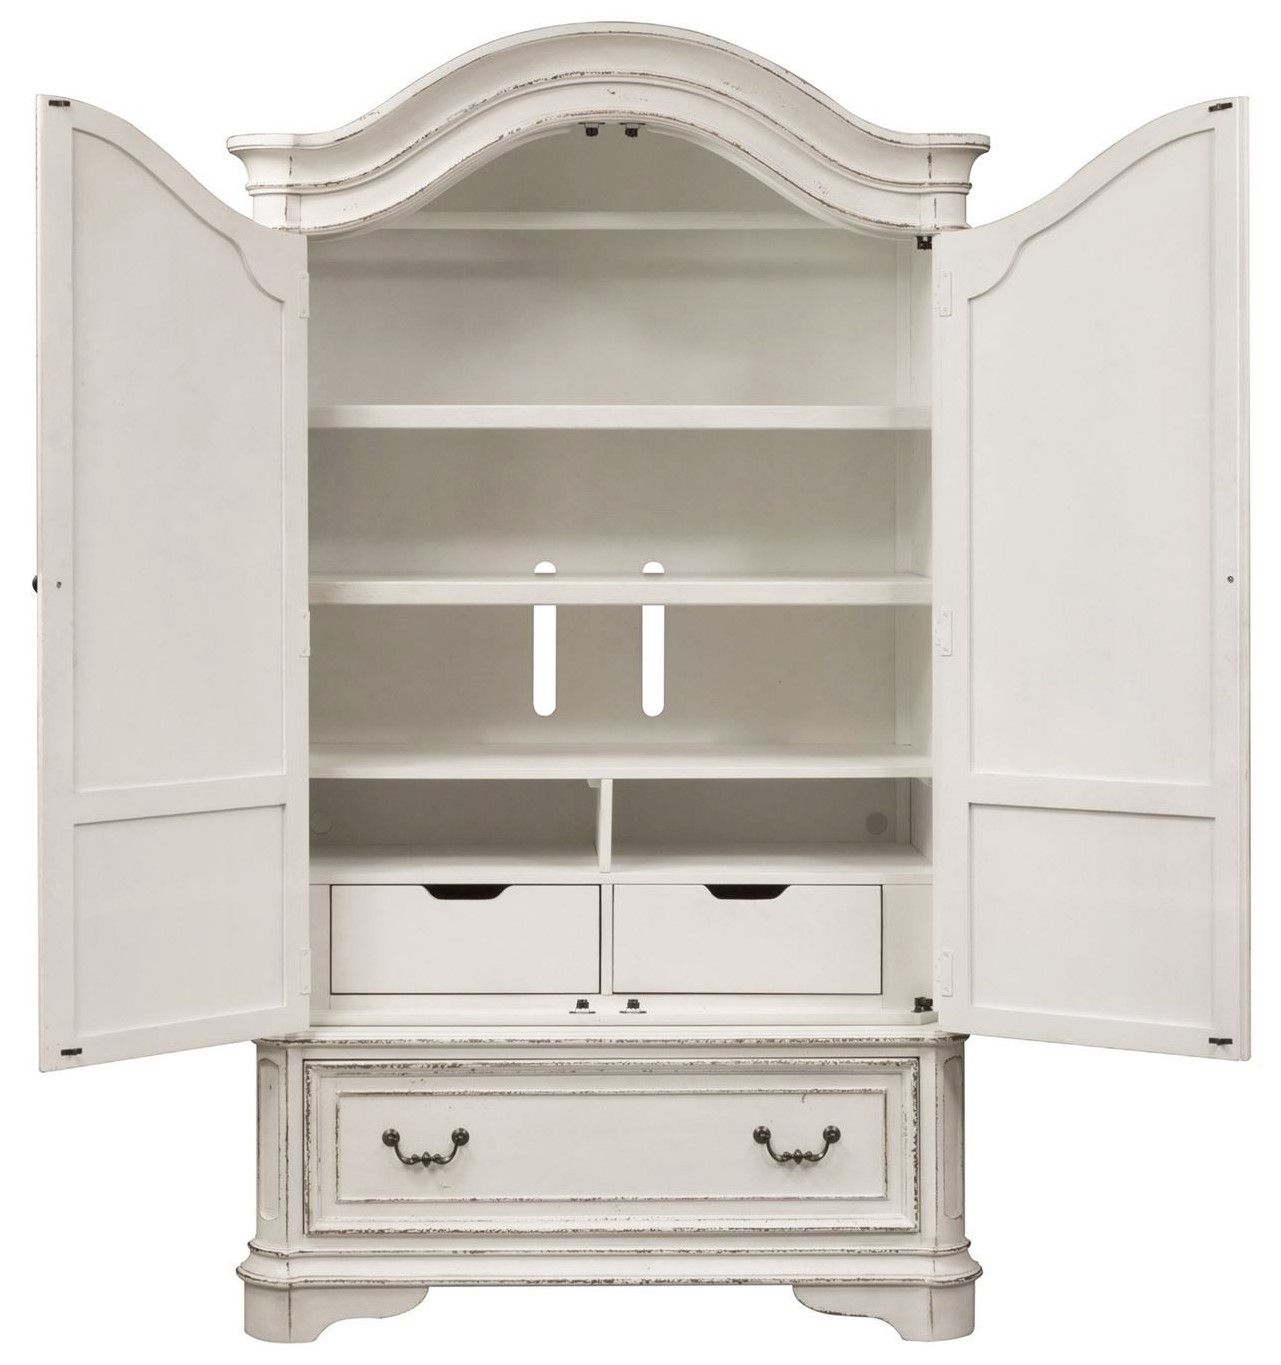 Magnolia Armoire w/Framed Drawer Fronts & Antique Brass ...